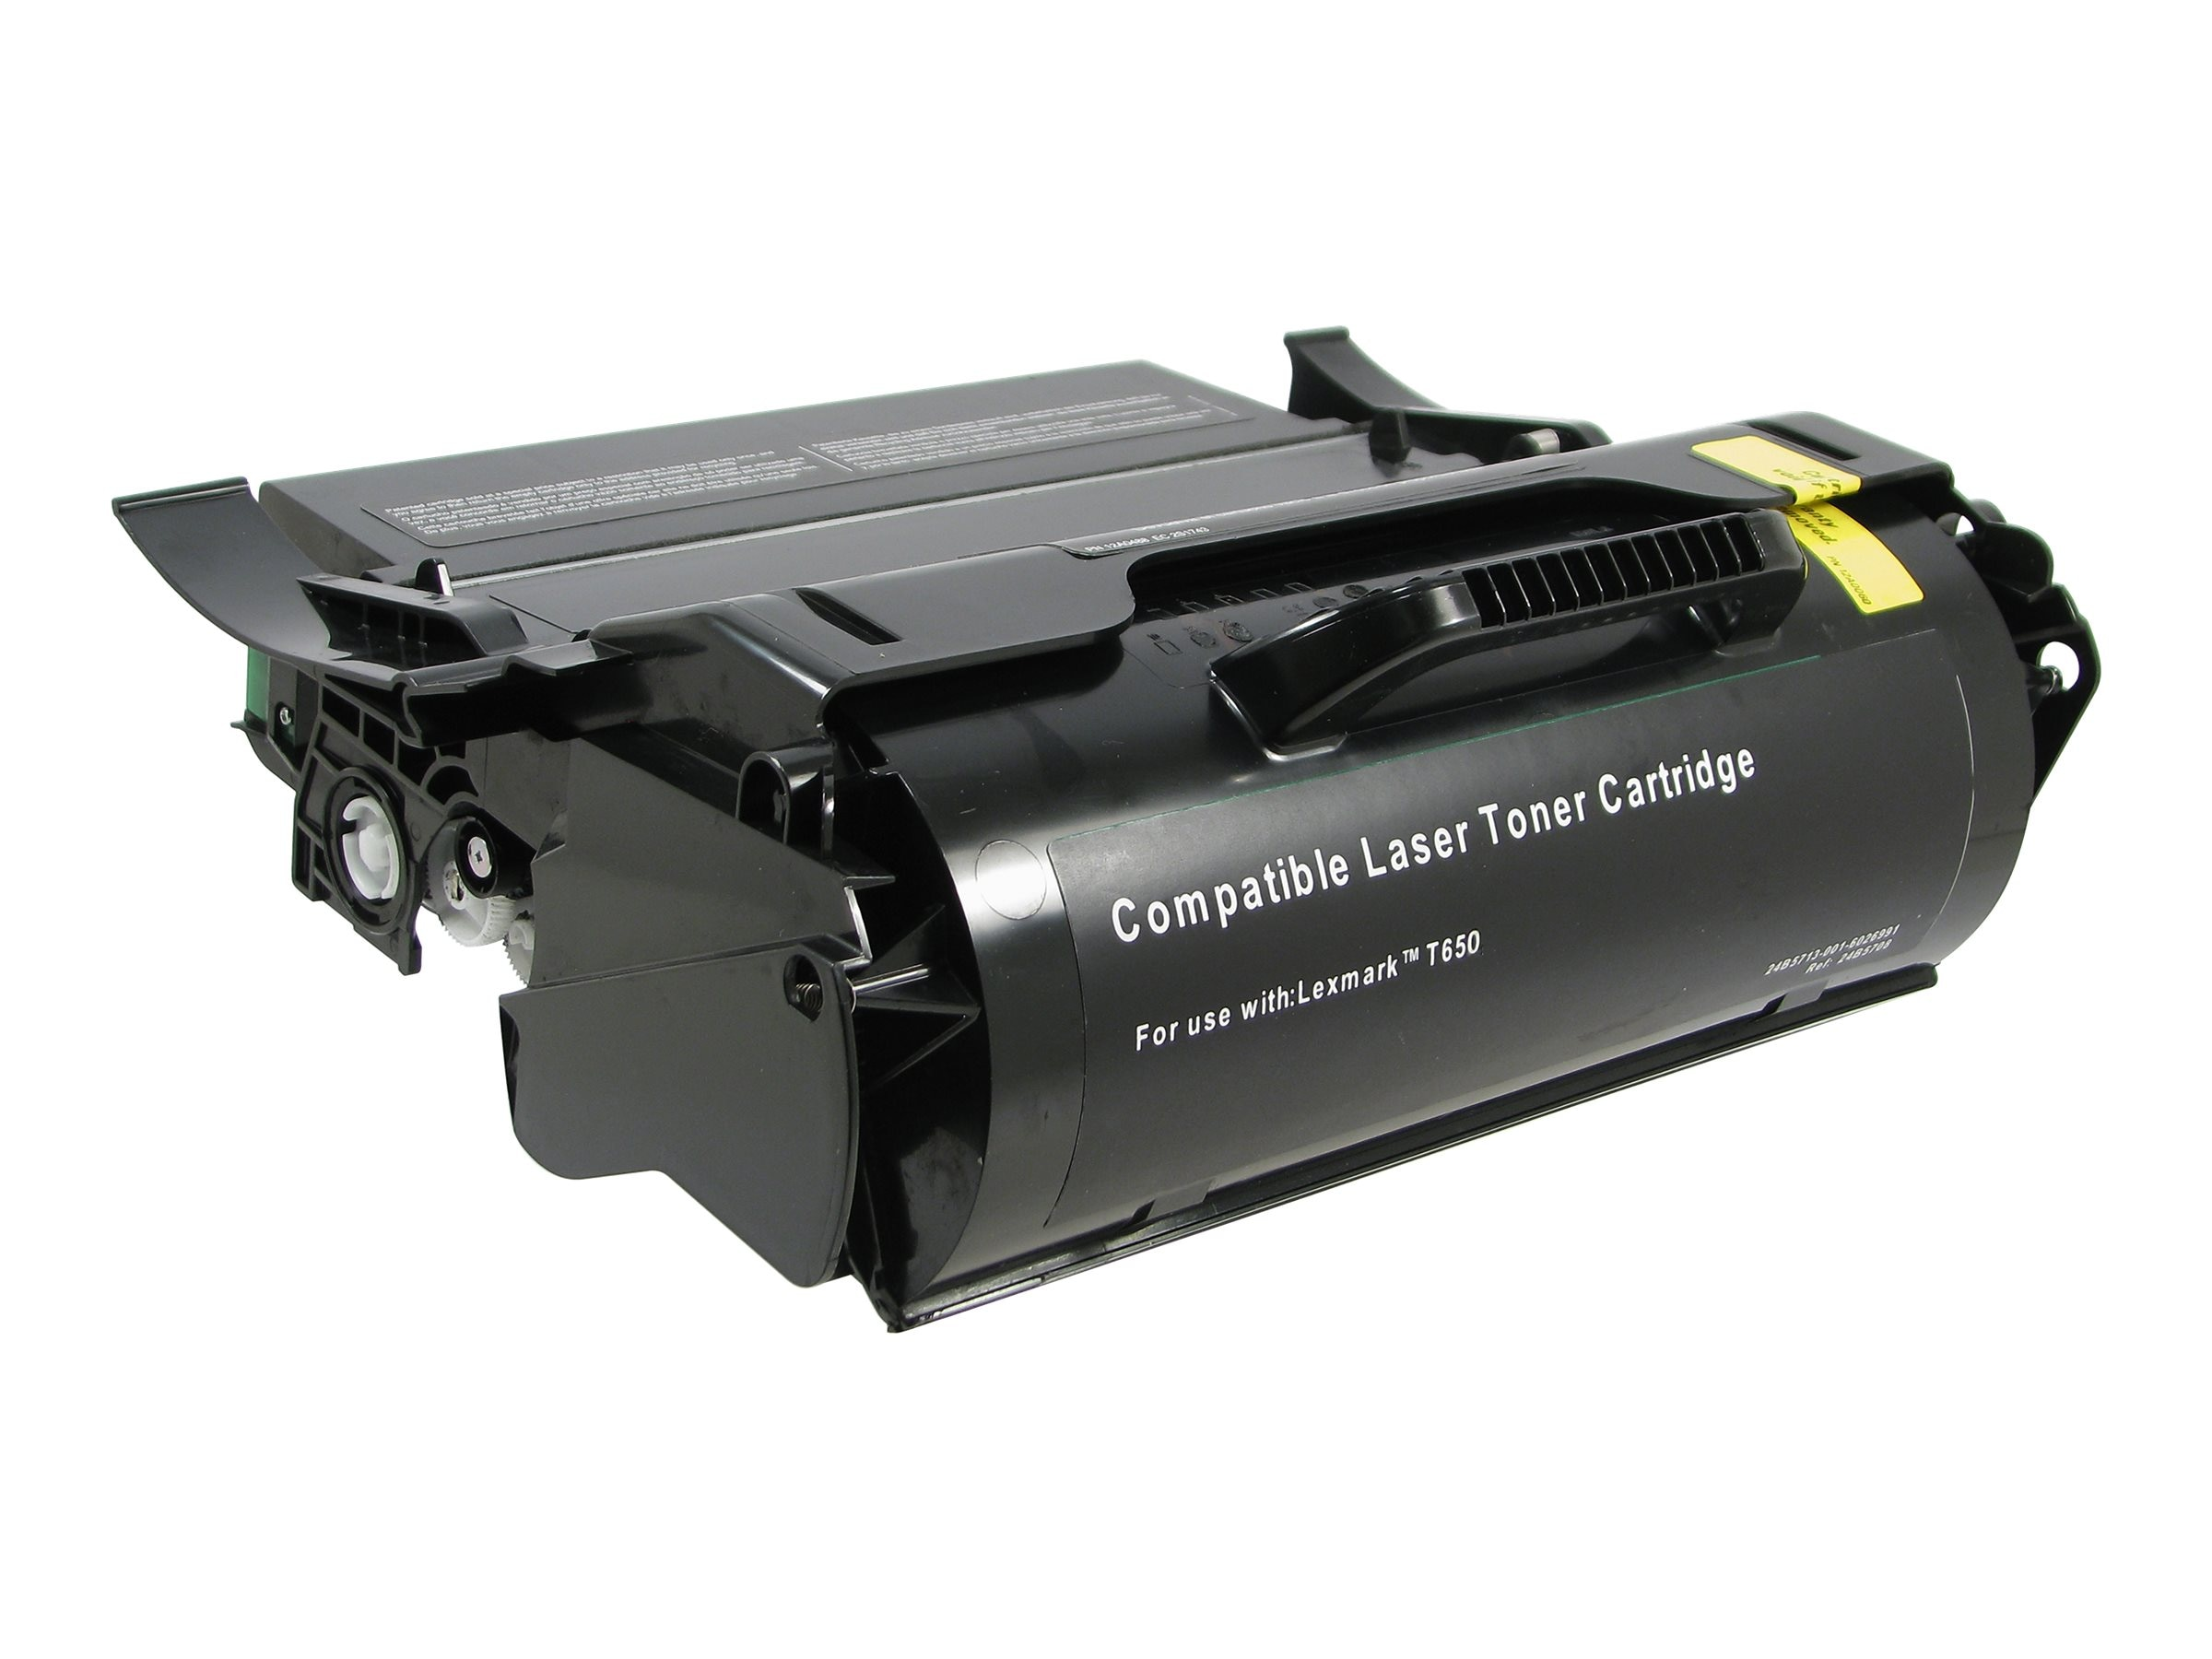 V7 T650H11A Black High Yield Toner Cartridge for Lexmark T650, T654, X651 & X654, V7T650